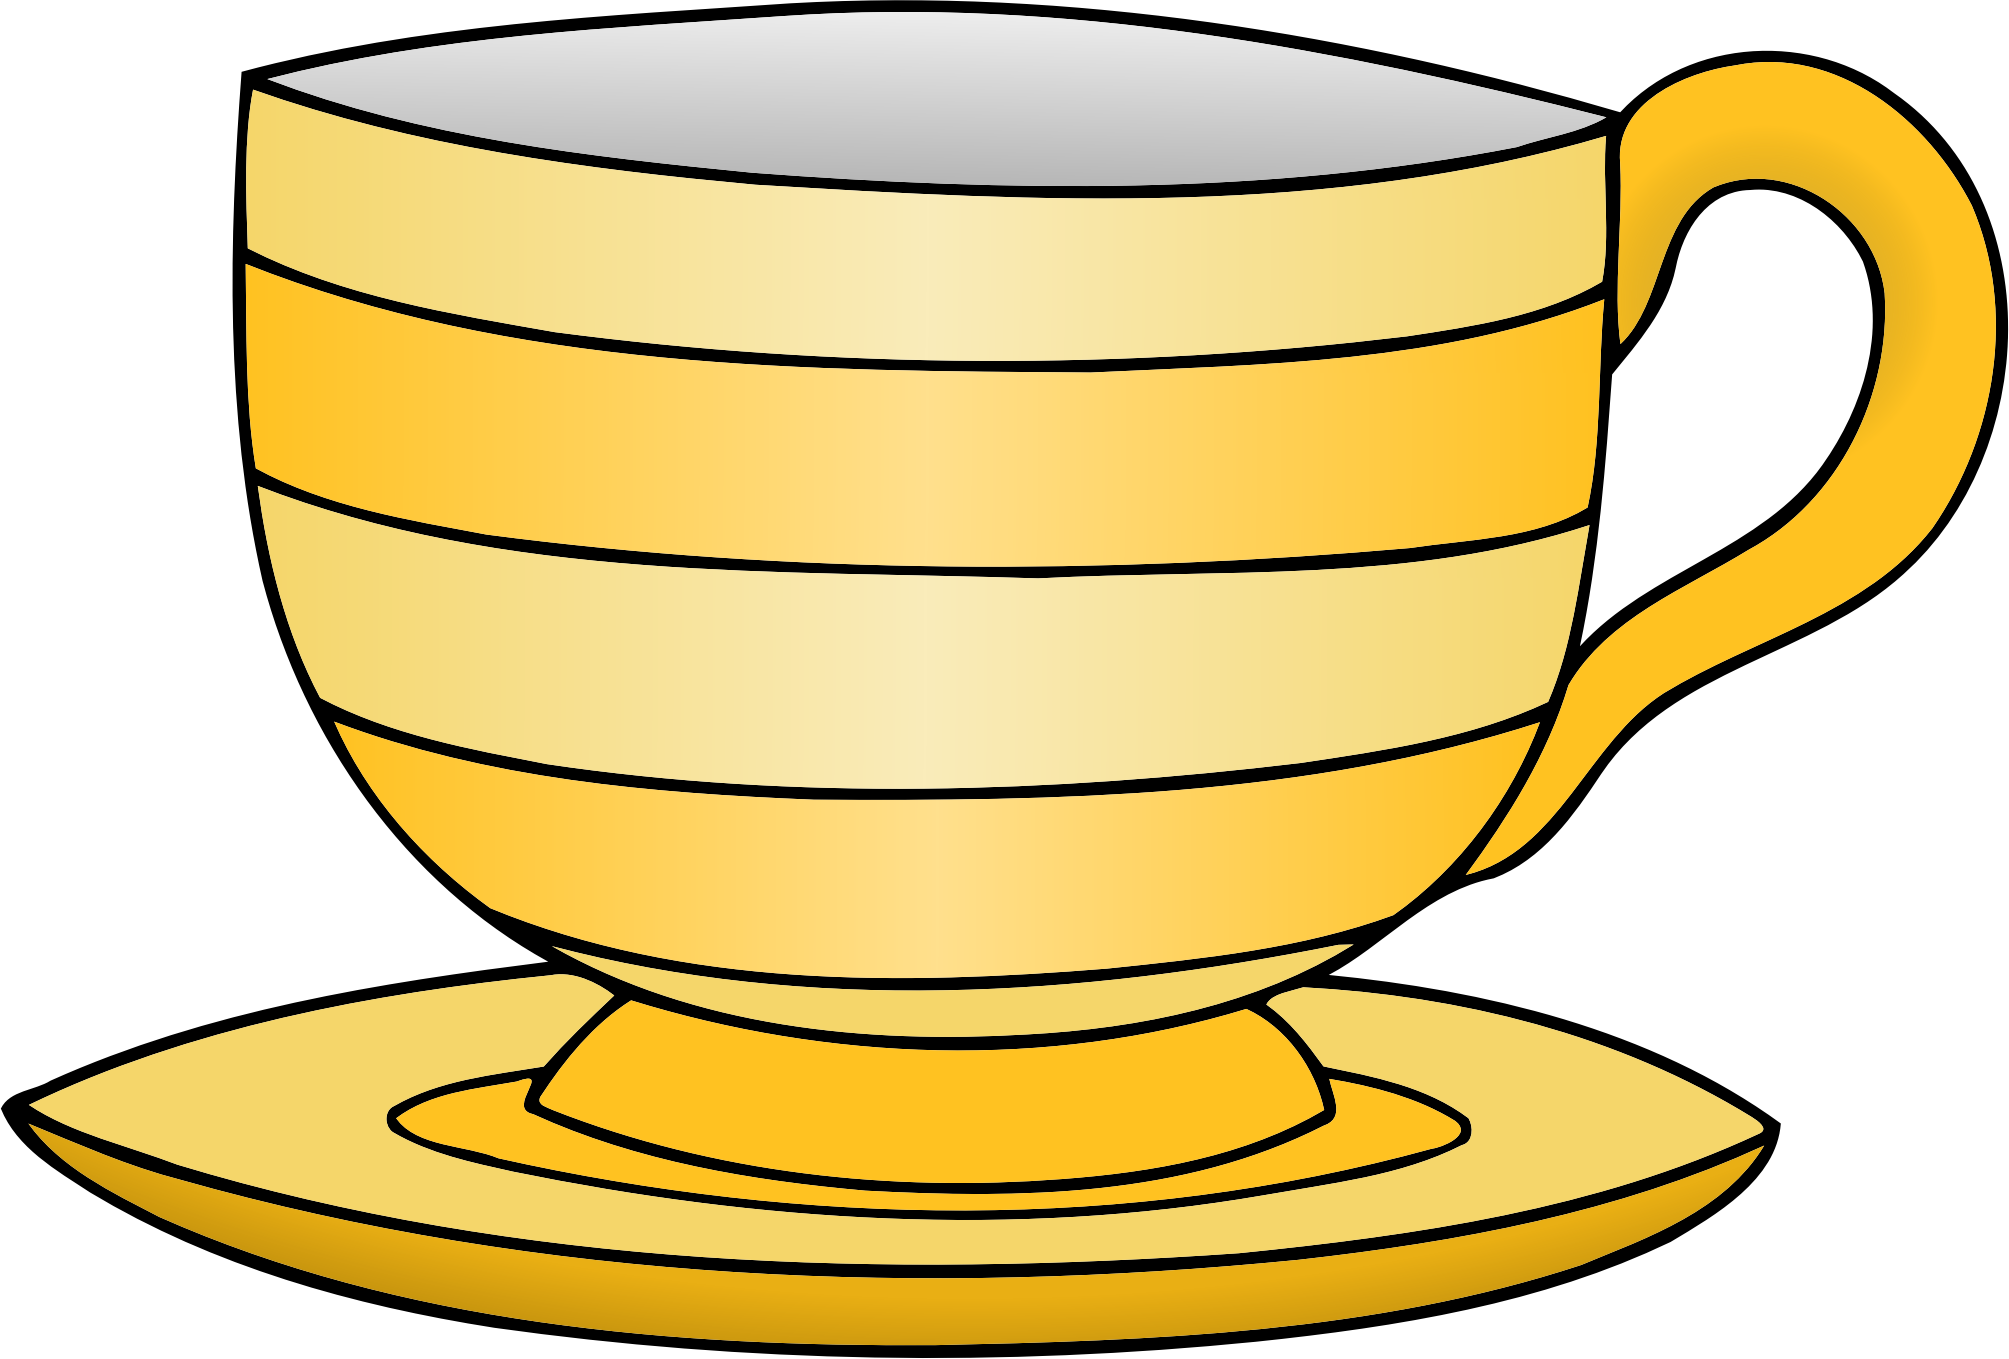 Teacup Clipart Crockery.